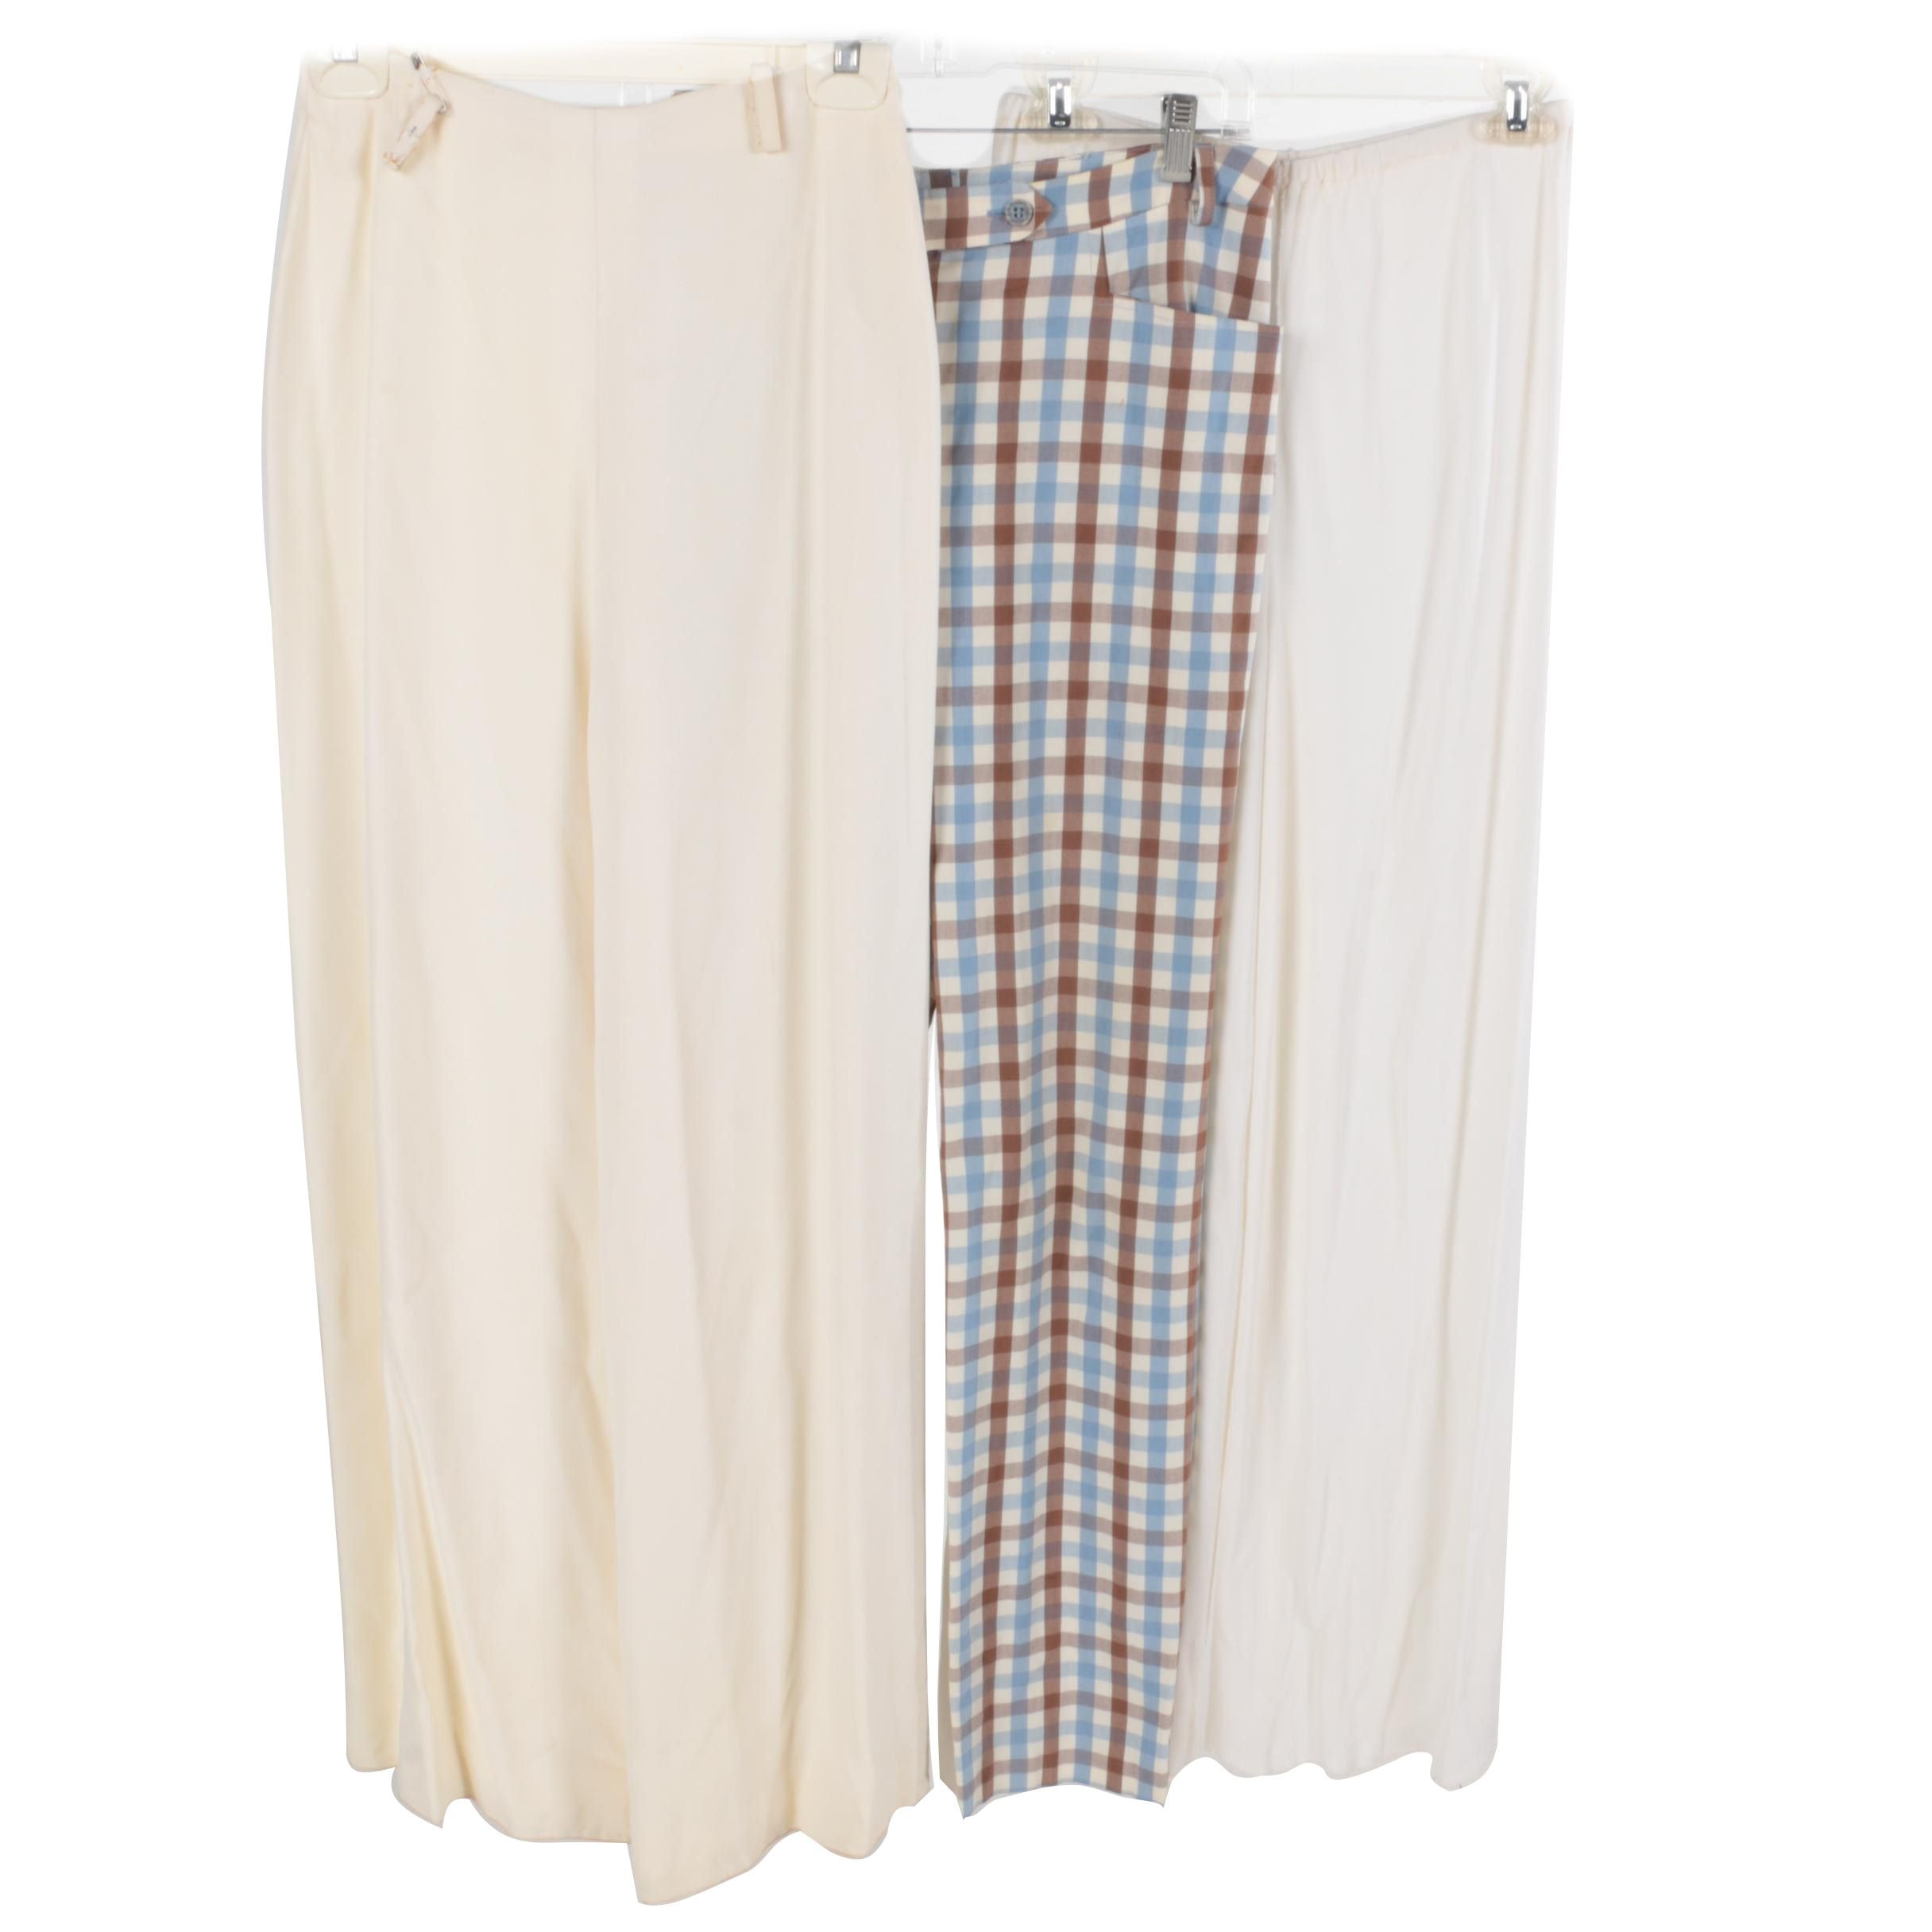 Women's Vintage Trousers Including Check Print